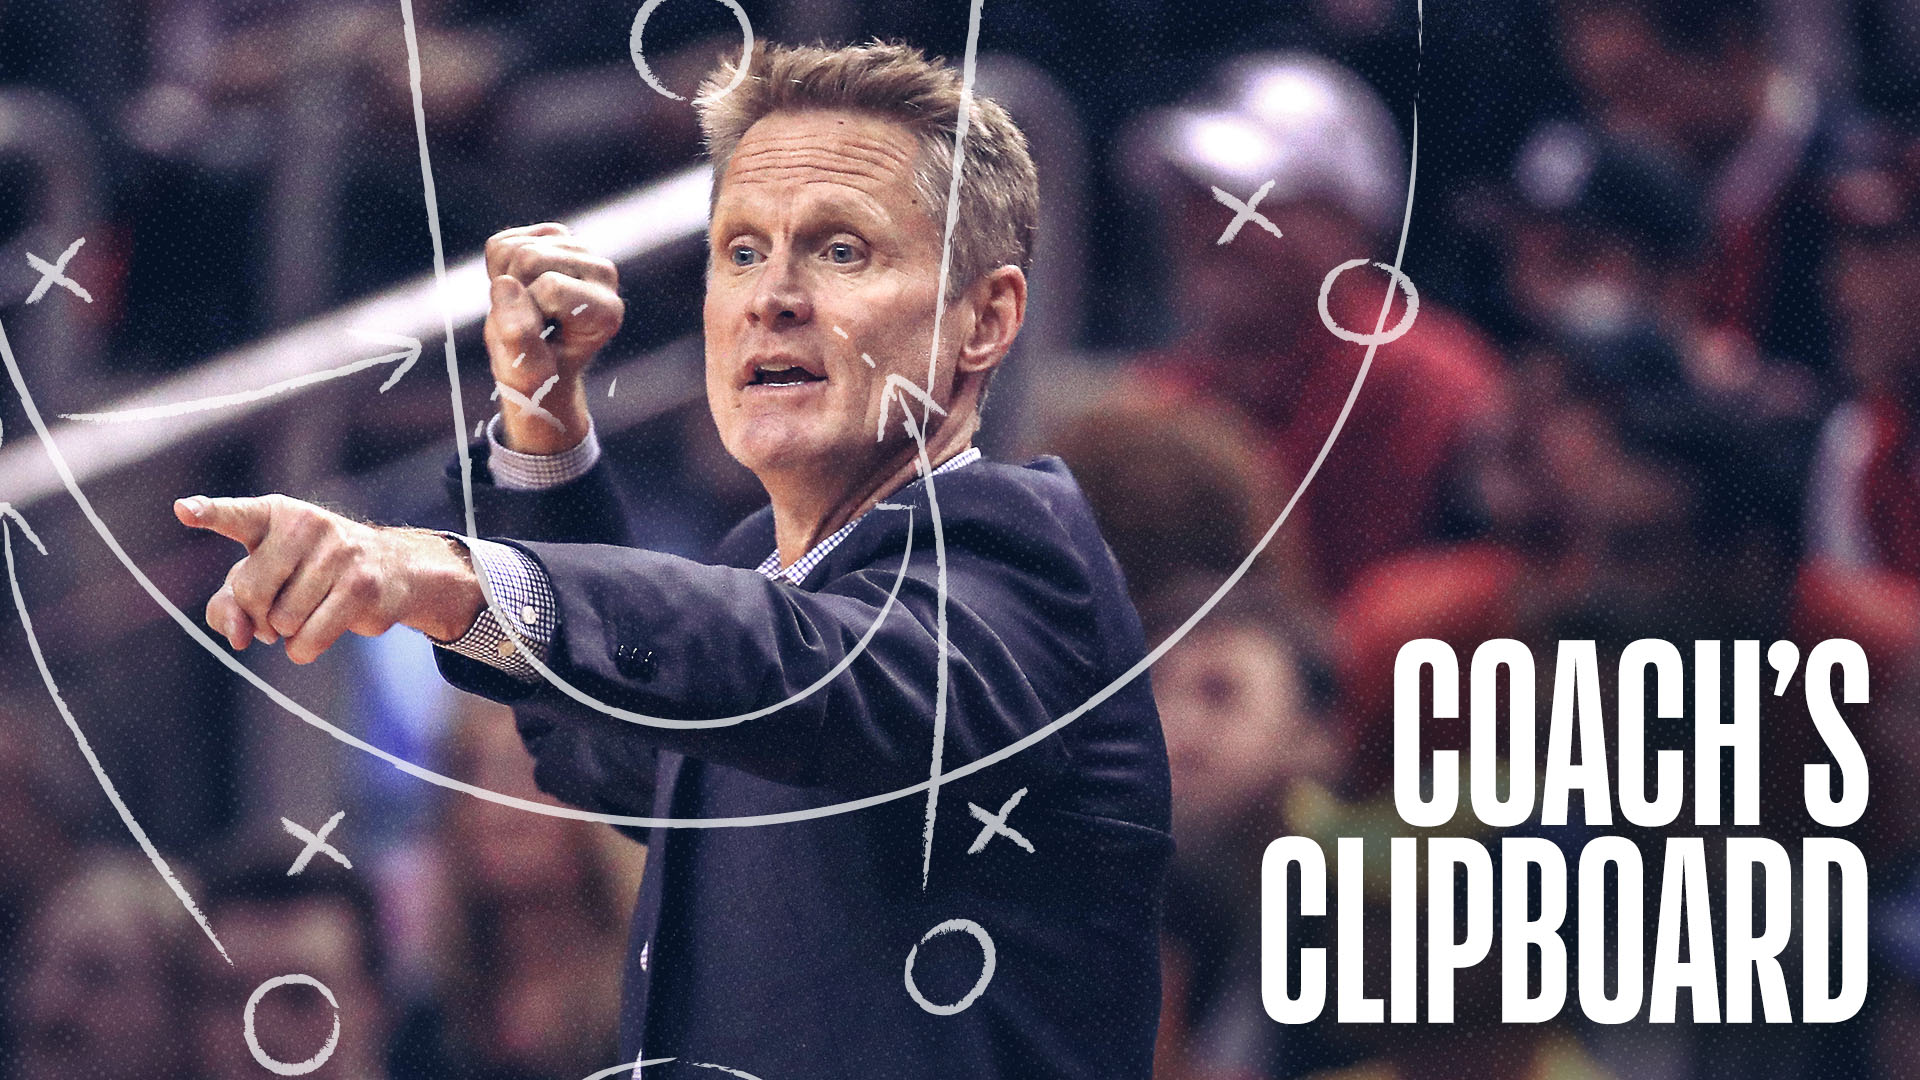 Coach's Clipboard: How Golden State Warriors head coach Steve Kerr can get the most out of D'Angelo Russell